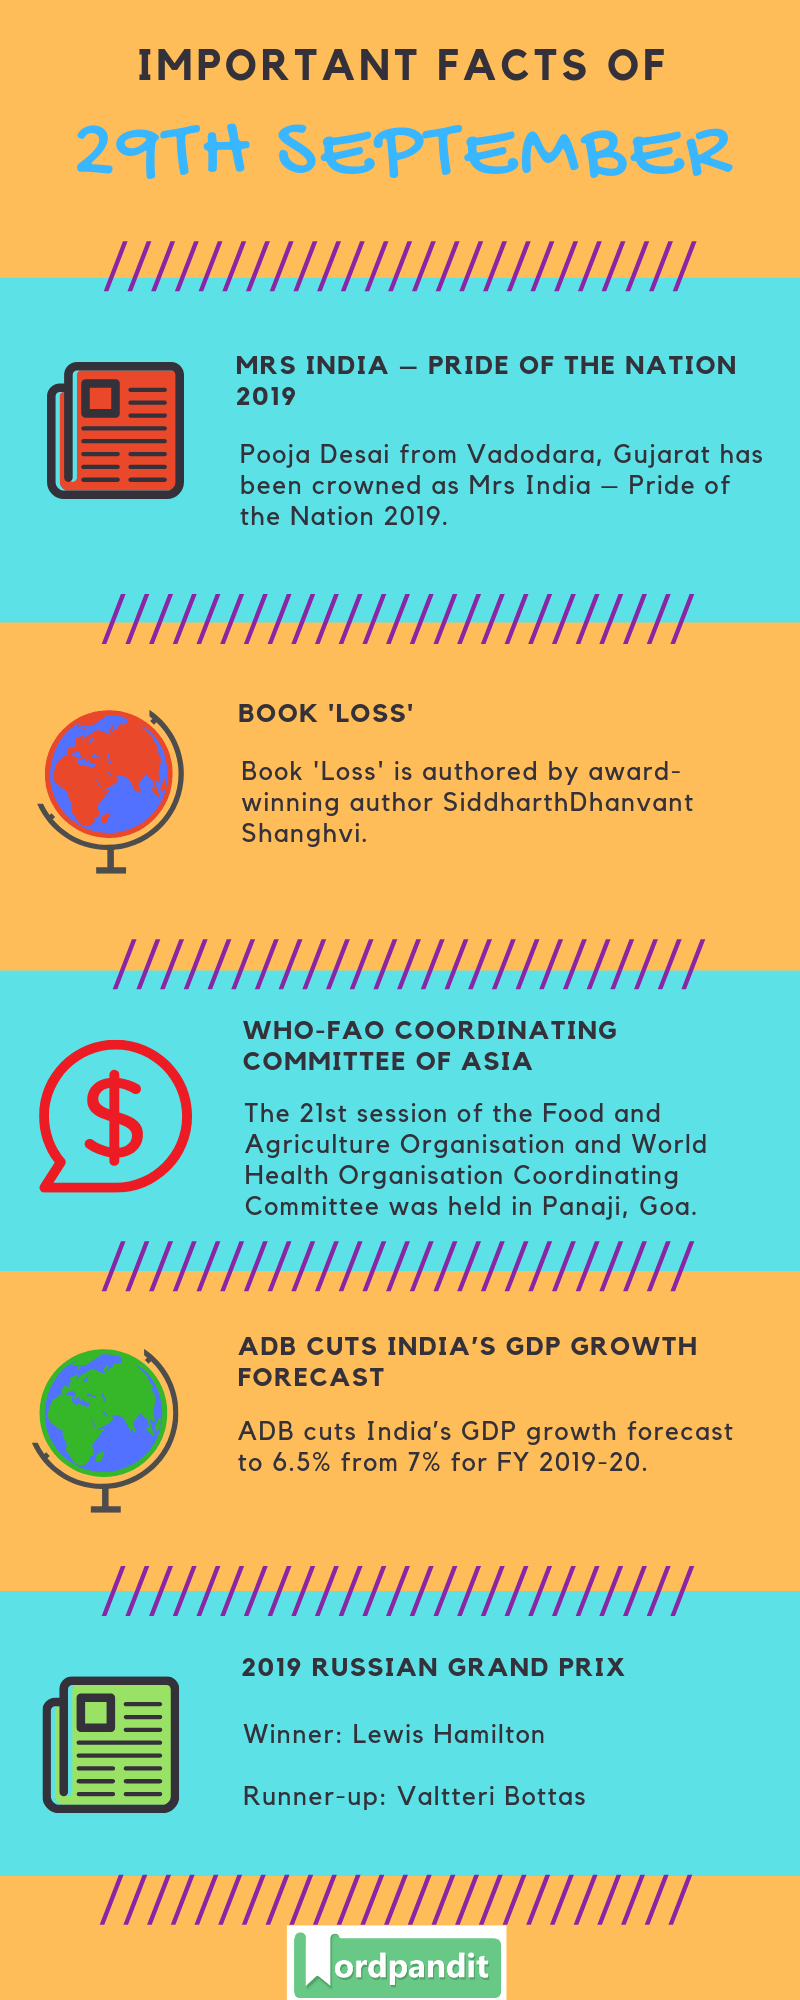 Daily Current Affairs 29 September 2019 Current Affairs Quiz 29 September 2019 Current Affairs Infographic